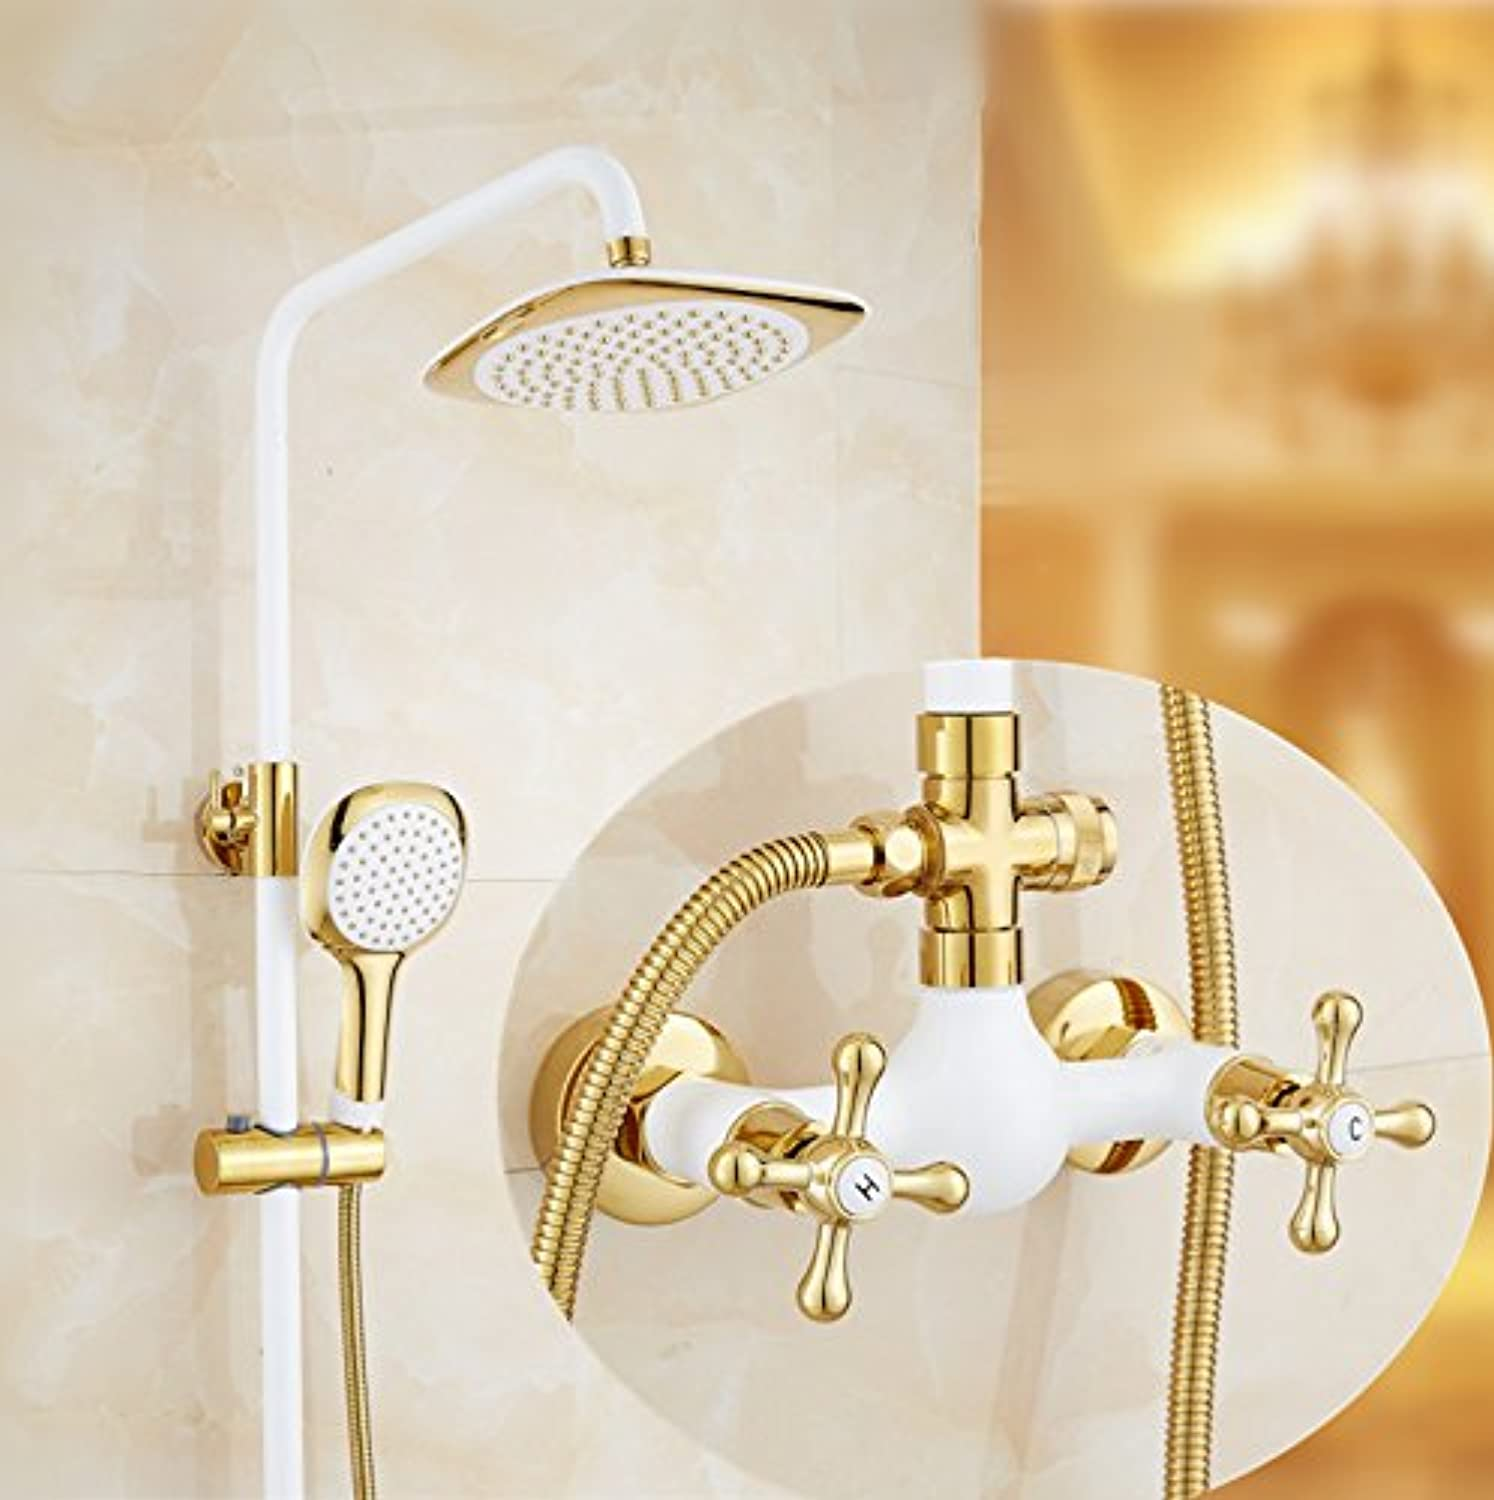 ZQ@QXContinental antique Cu all showers Package C